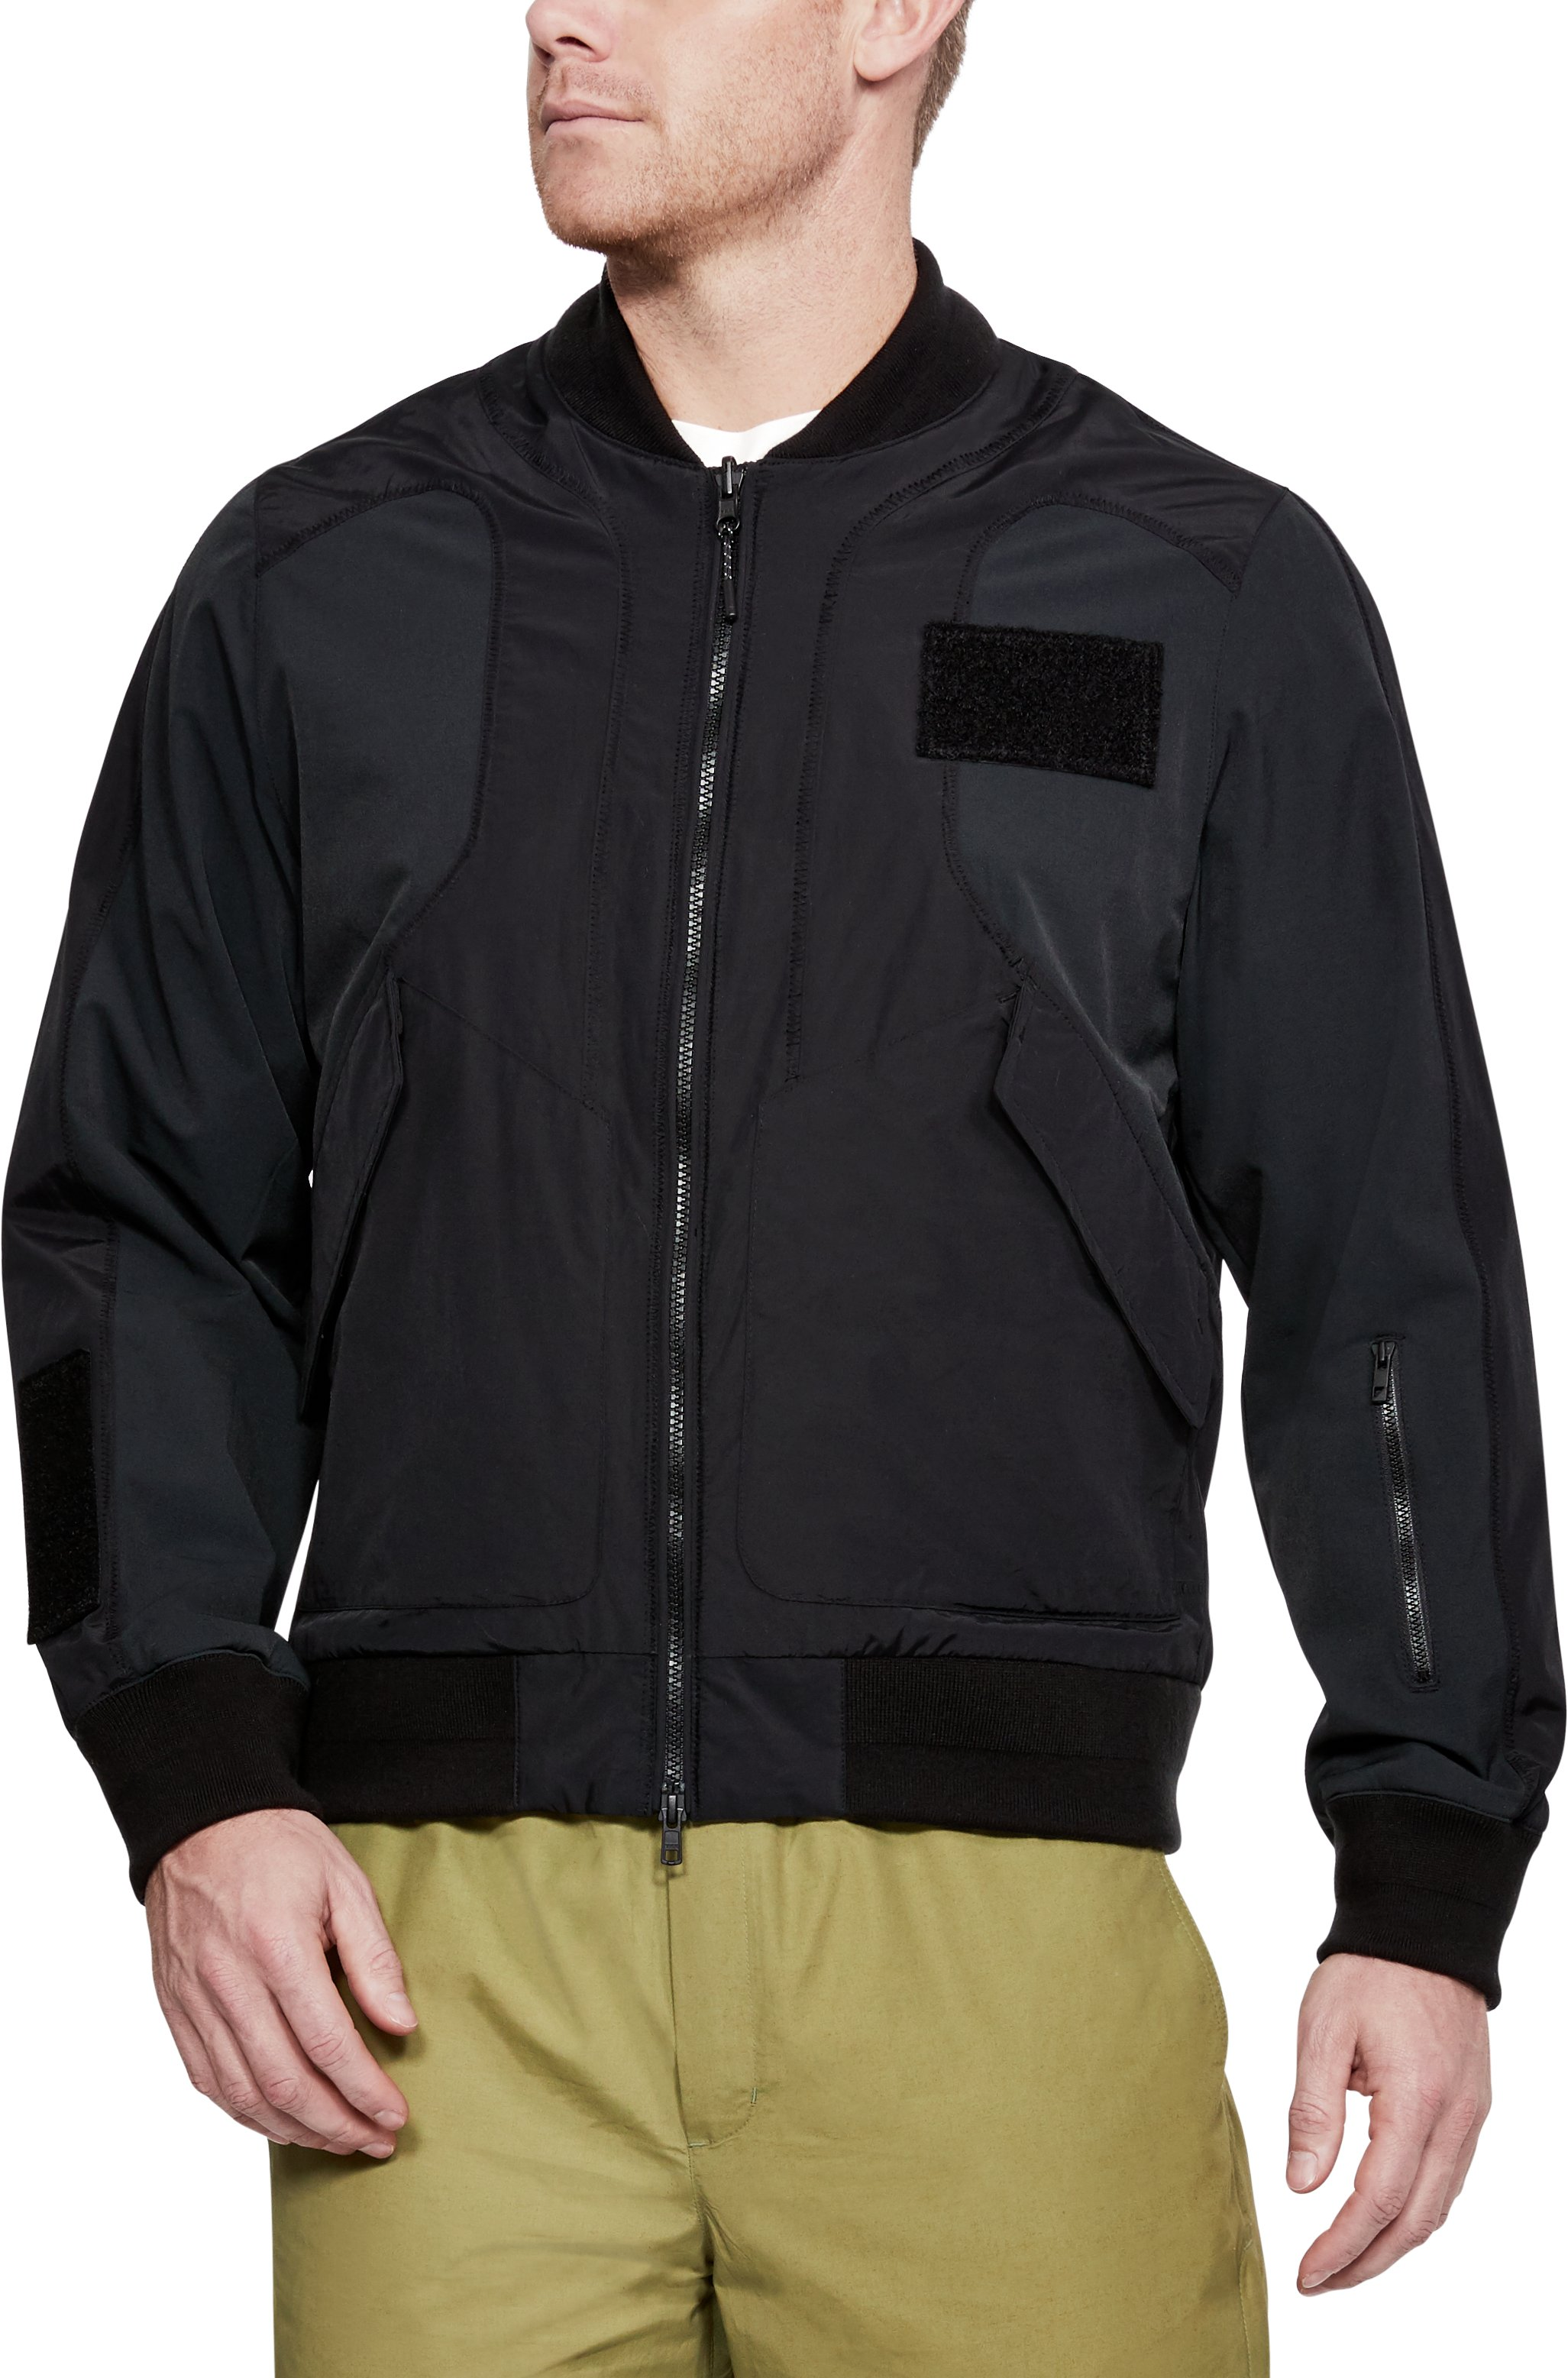 Men's UAS Nylon Bomber Jacket 2 Colors $150.00 - $150.99